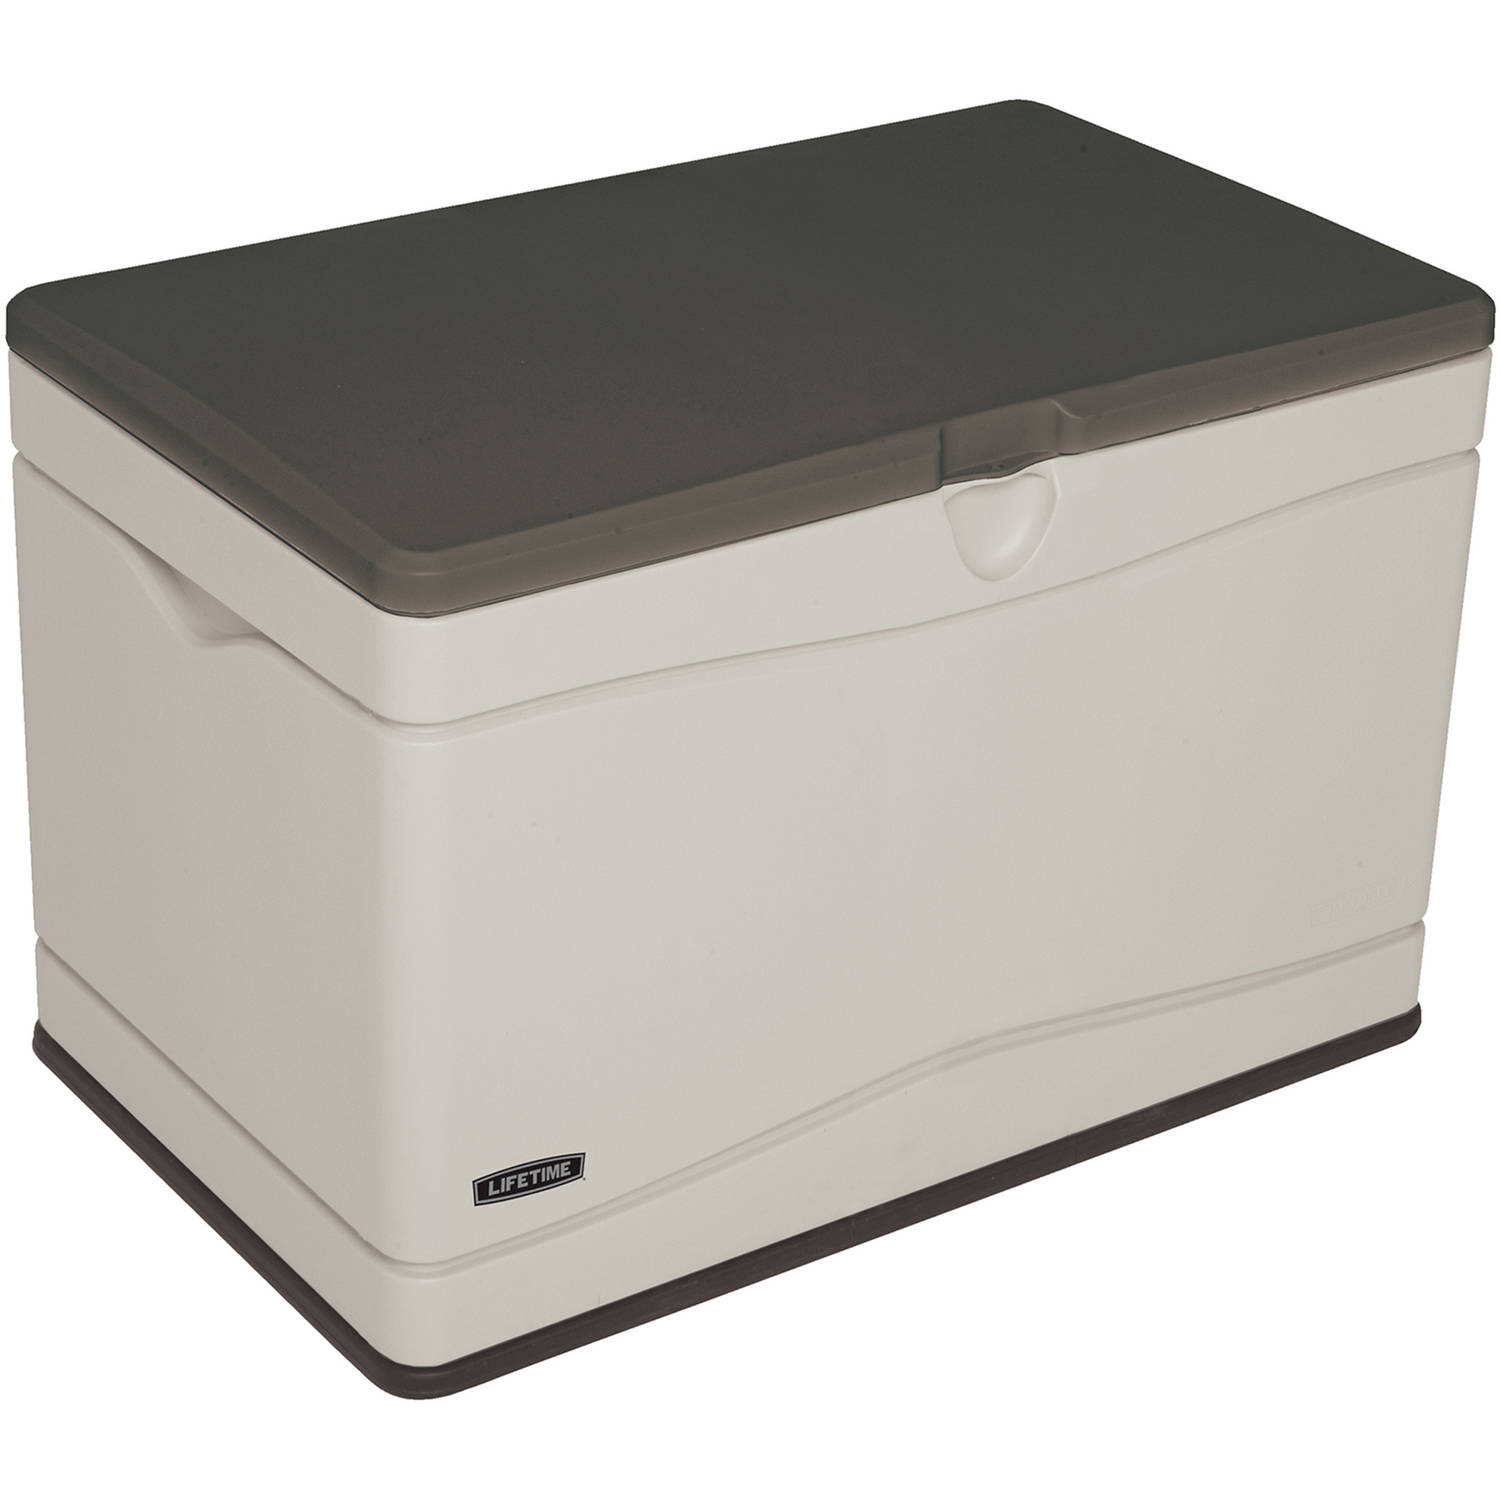 Lifetime Outdoor Storage Box (80-Gallon)